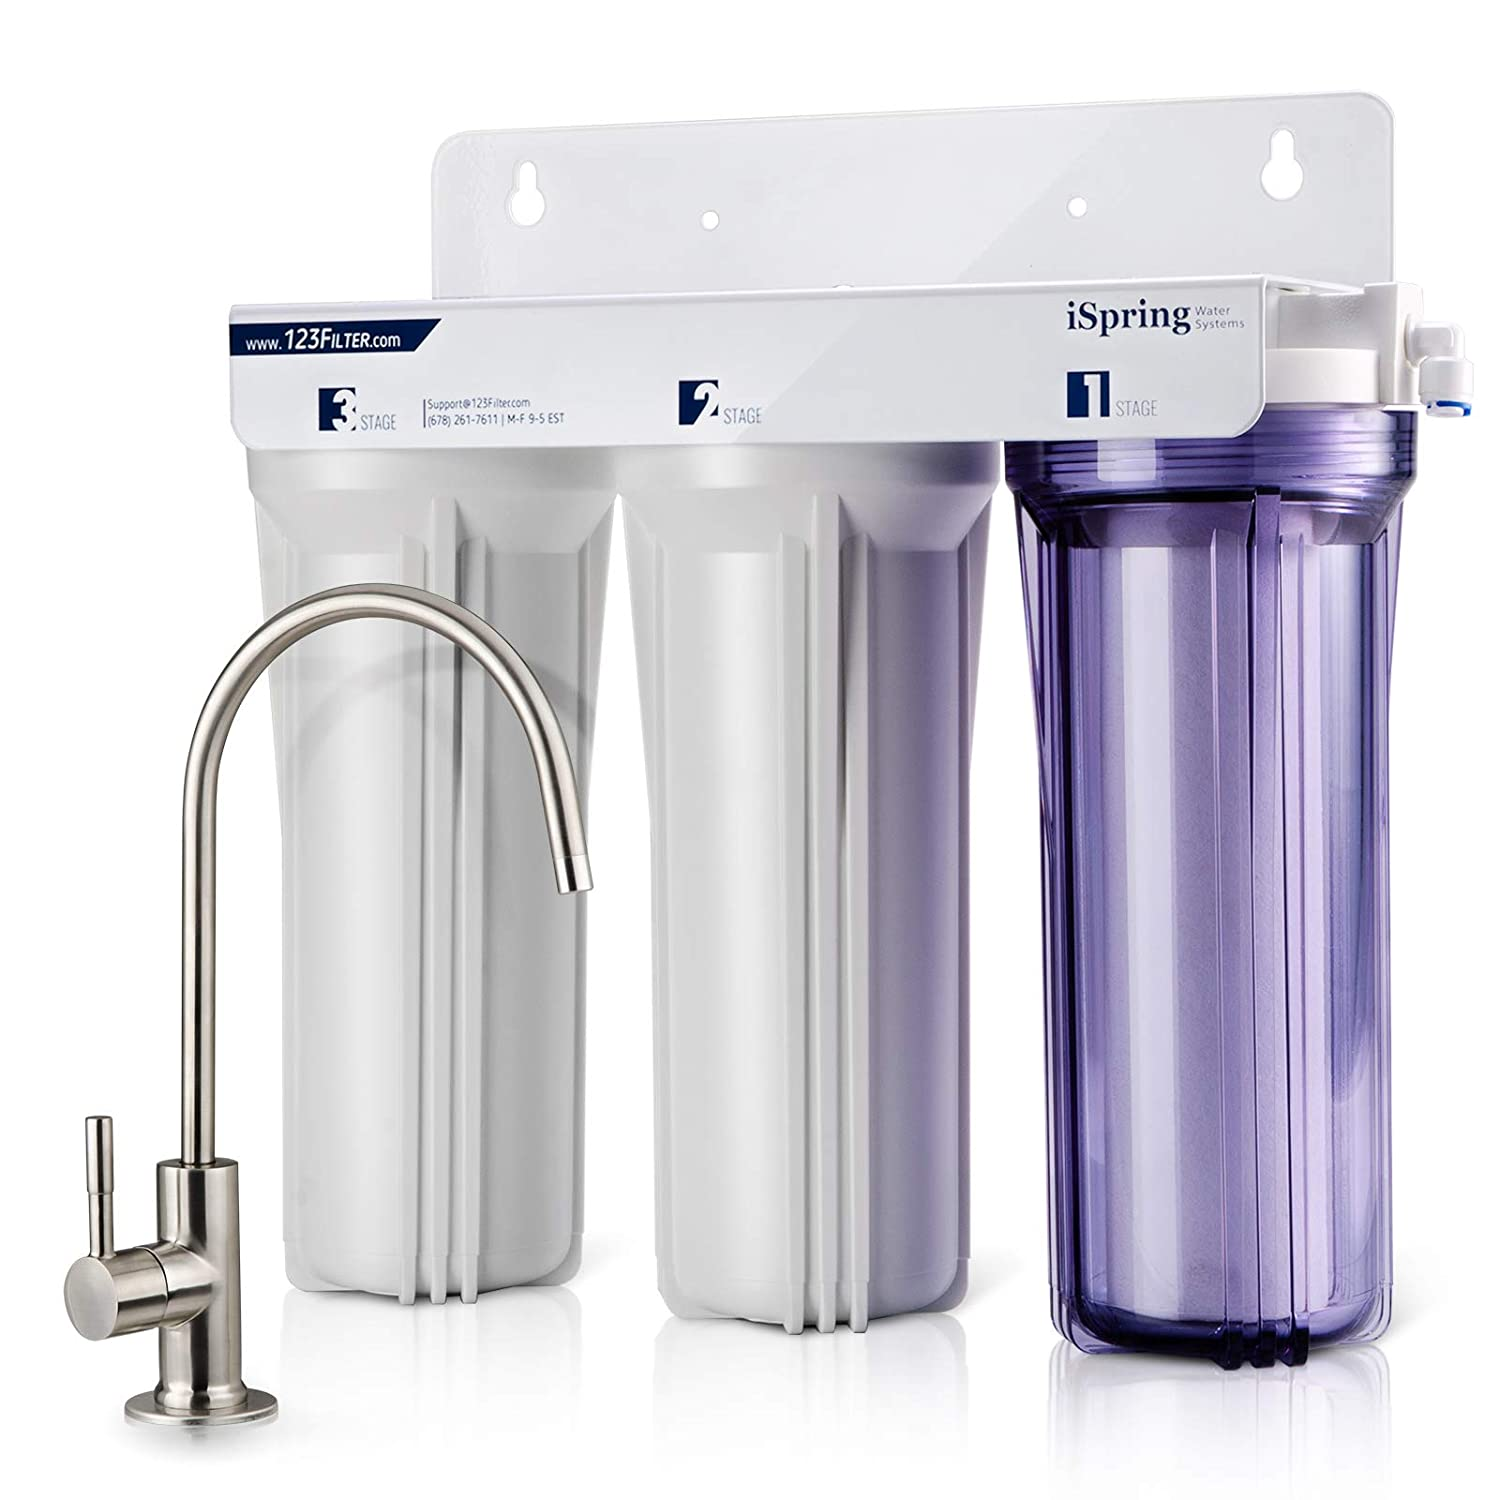 Ispring Us31 3 Stage Under Sink High Capacity Tankless Drinking Water Filtration System Includes Sediment 2x Cto Carbon Block Filters Newest Version